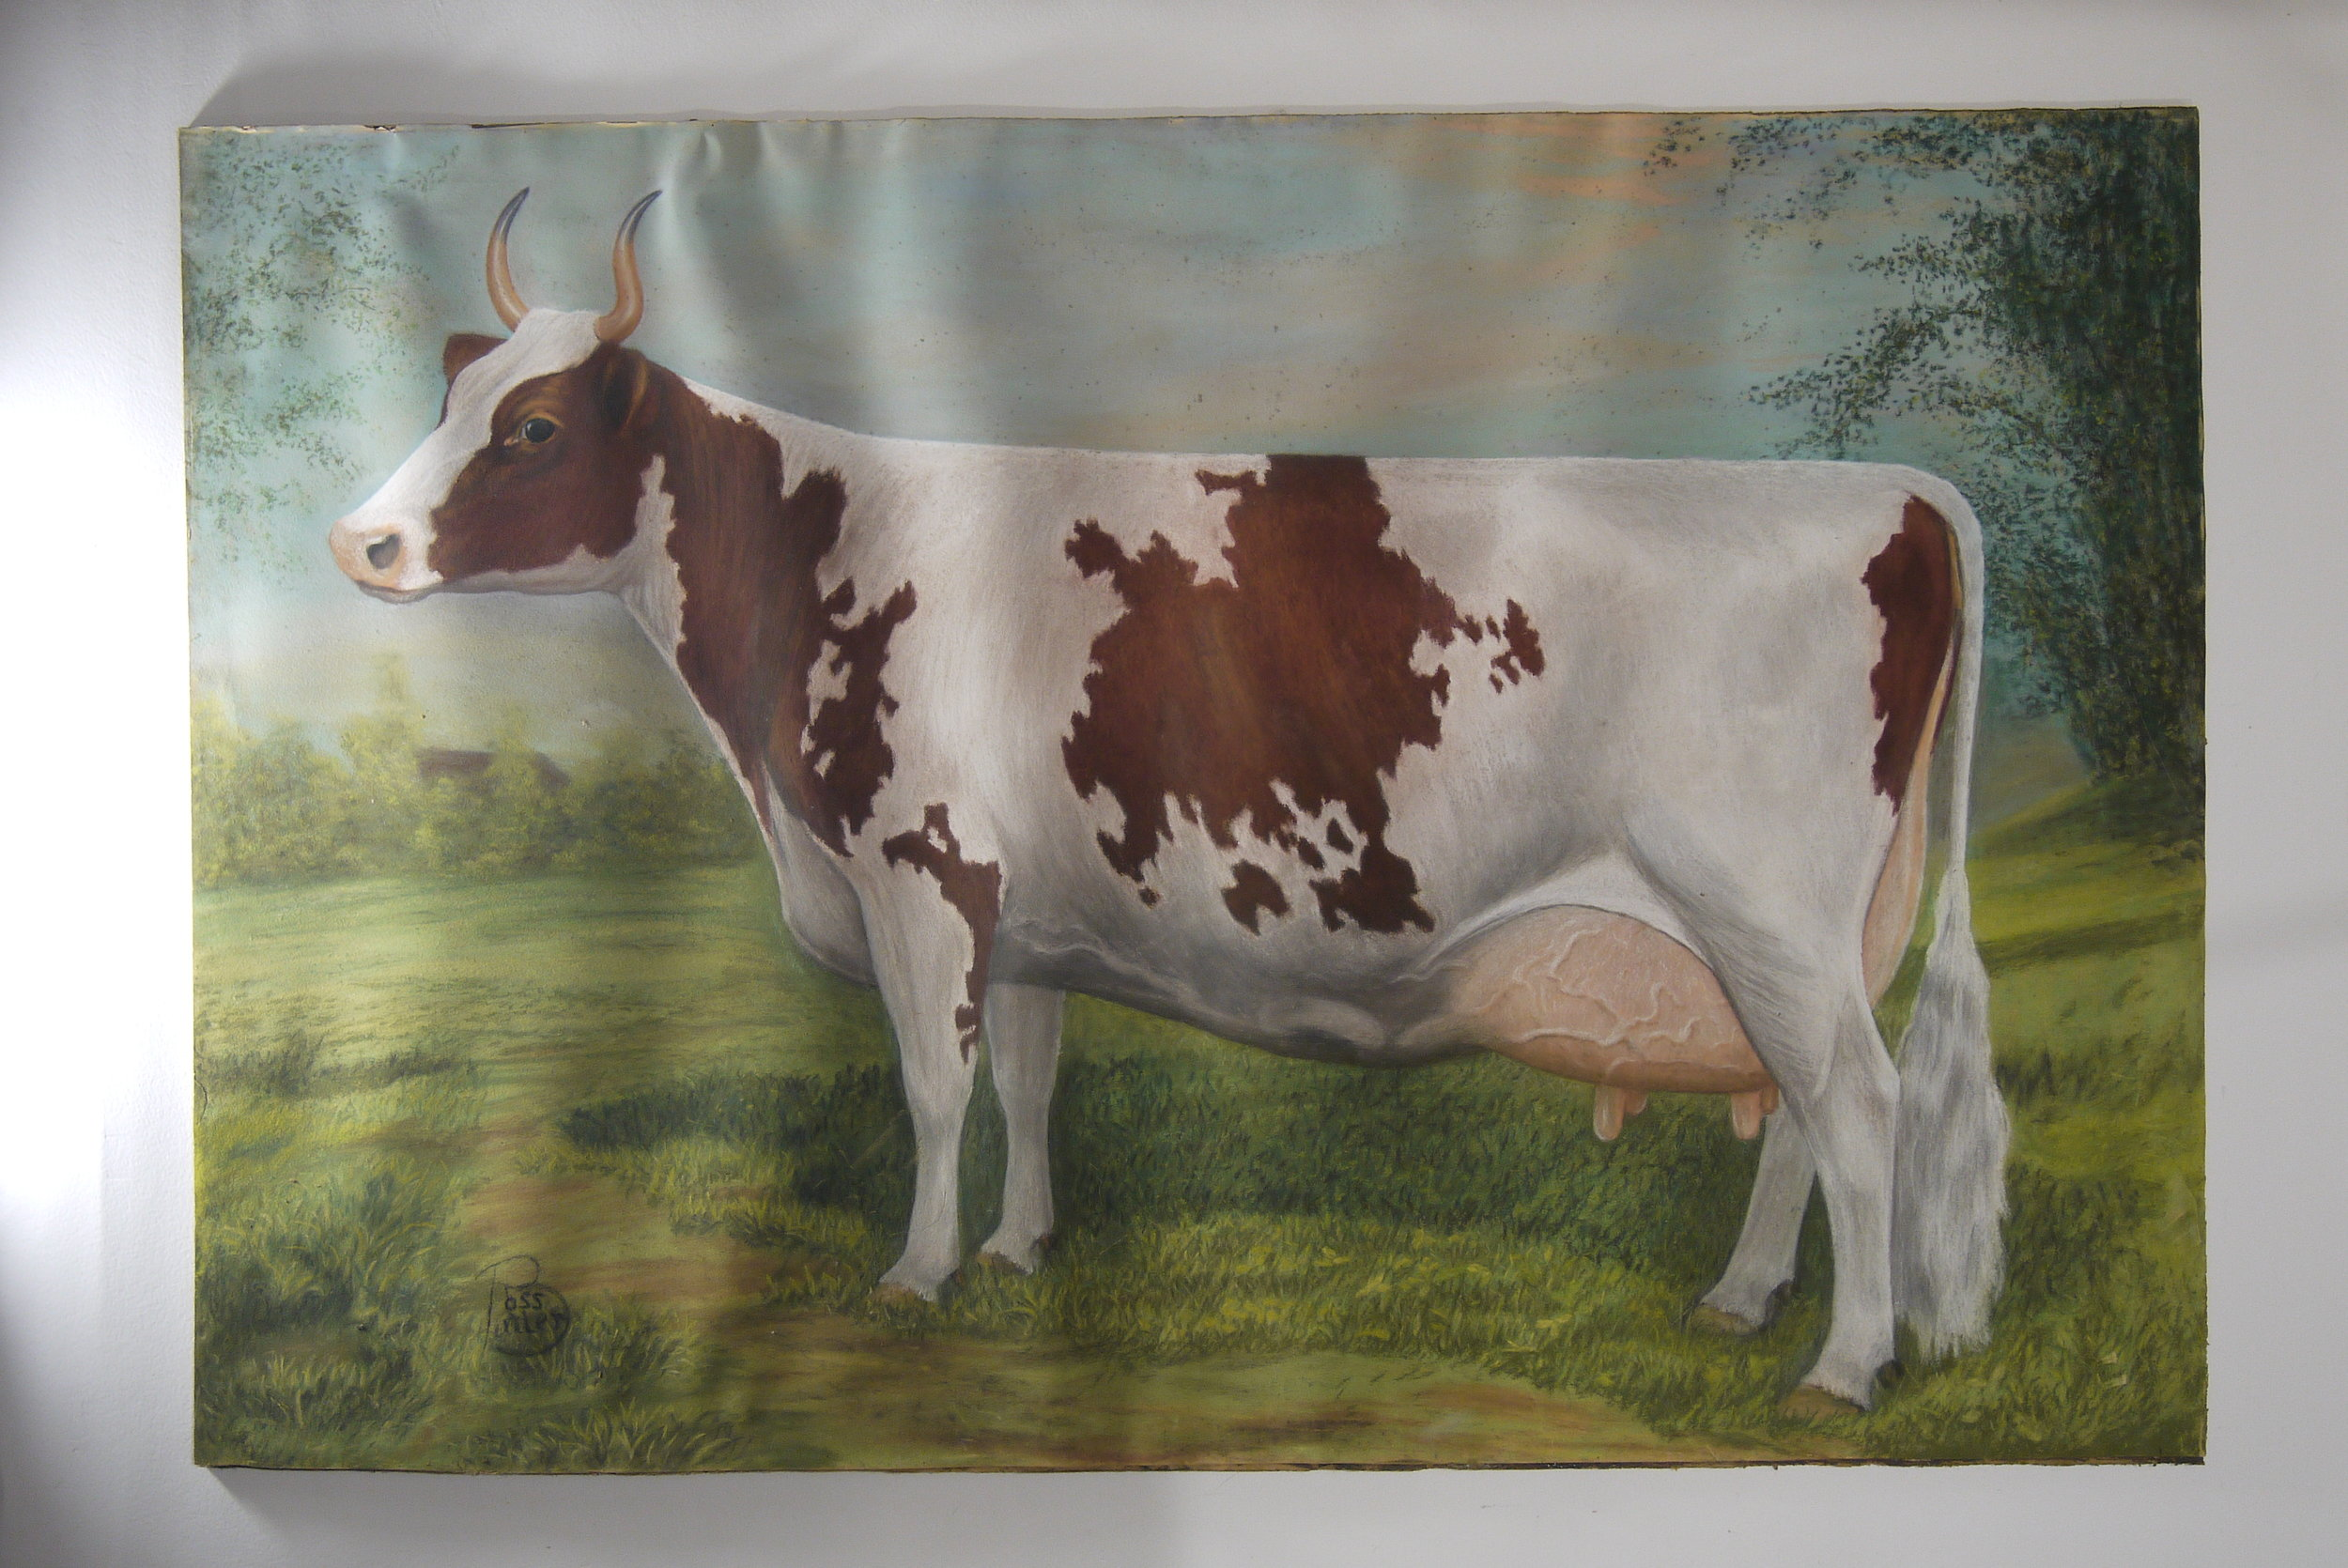 Ayrshire Cow  before conservation - raking light showing planar deformation of paper.